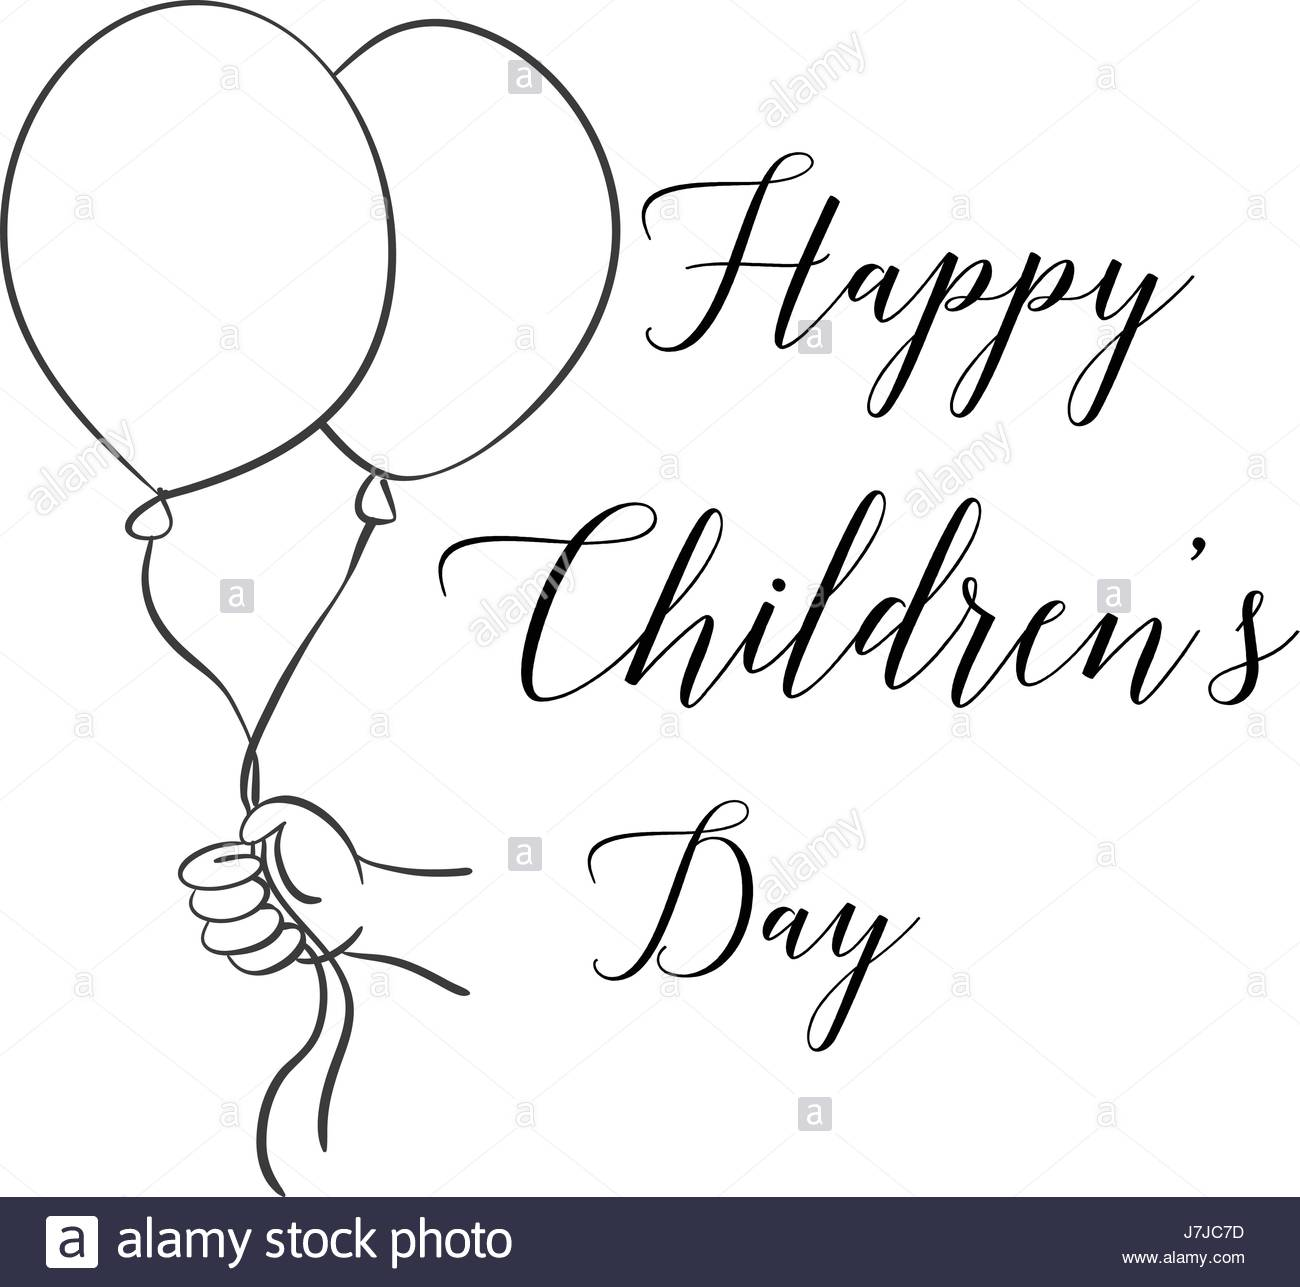 1300x1287 Childrens Day With Balloon Hand Draw Stock Vector Art